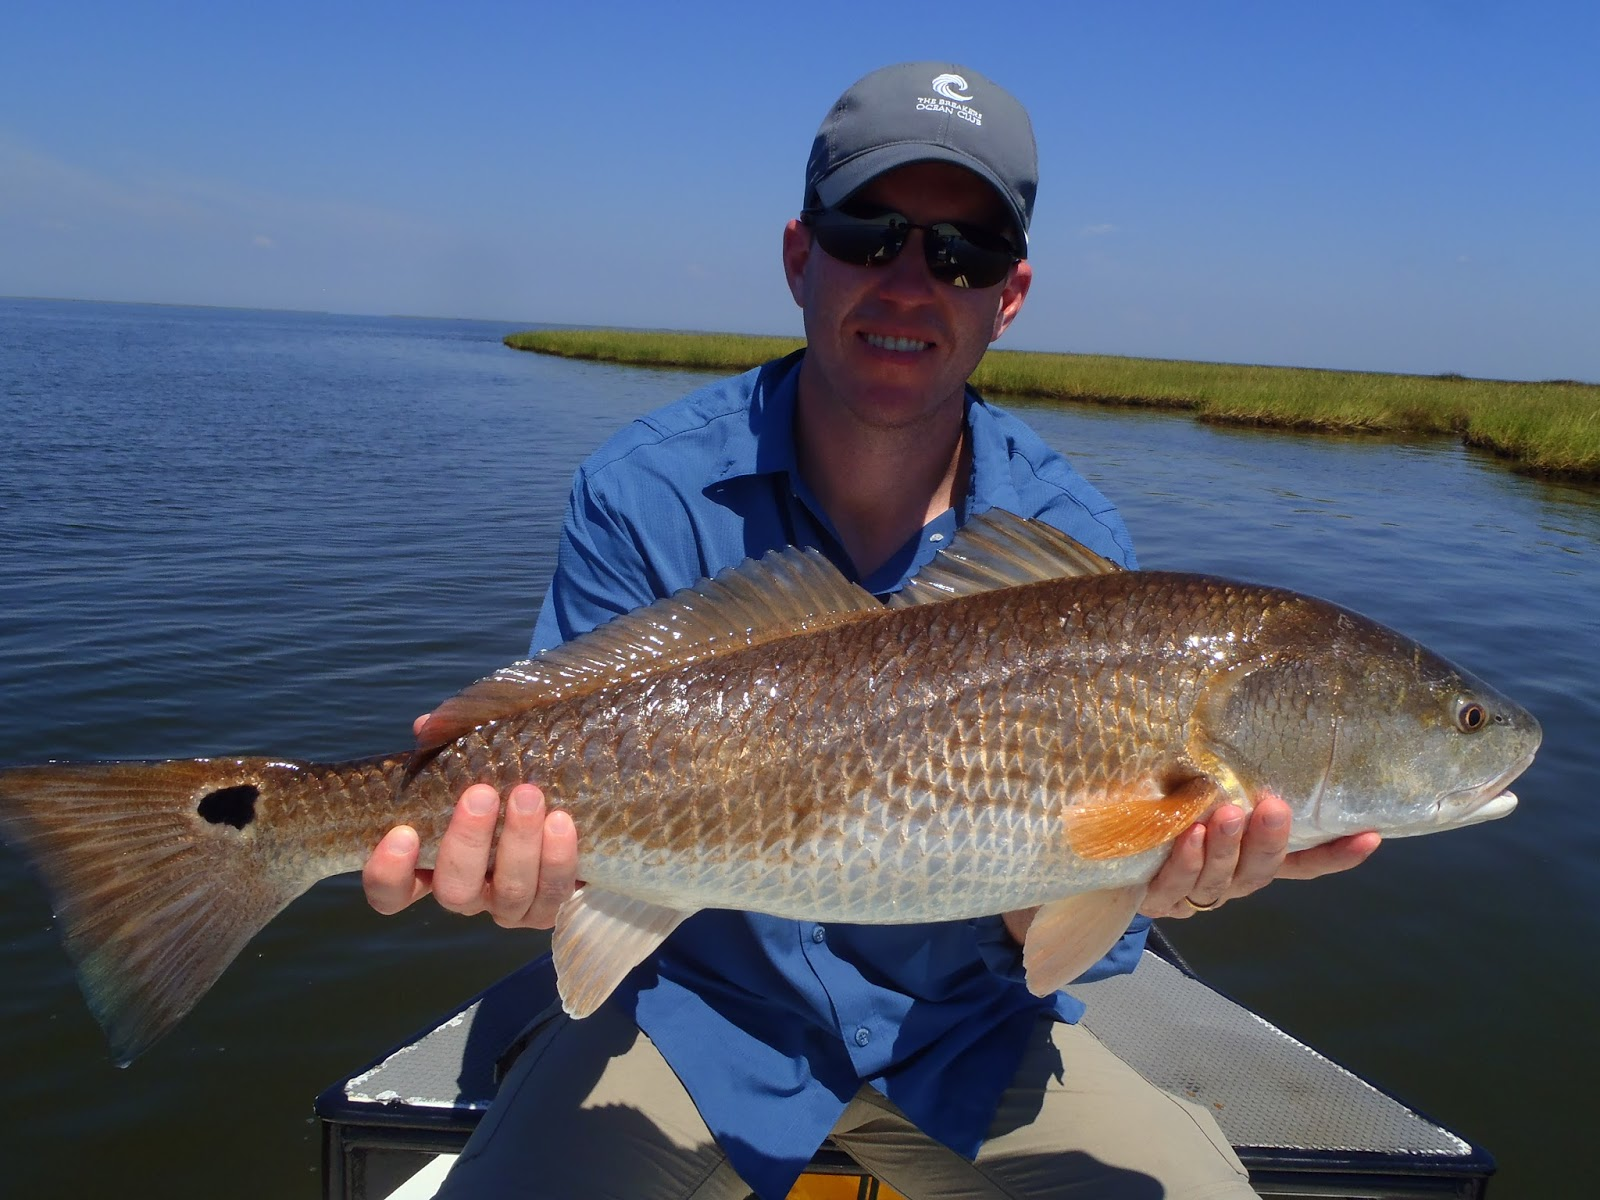 Redfishing louisiana a guides journey september 2015 for Louisiana redfish fly fishing